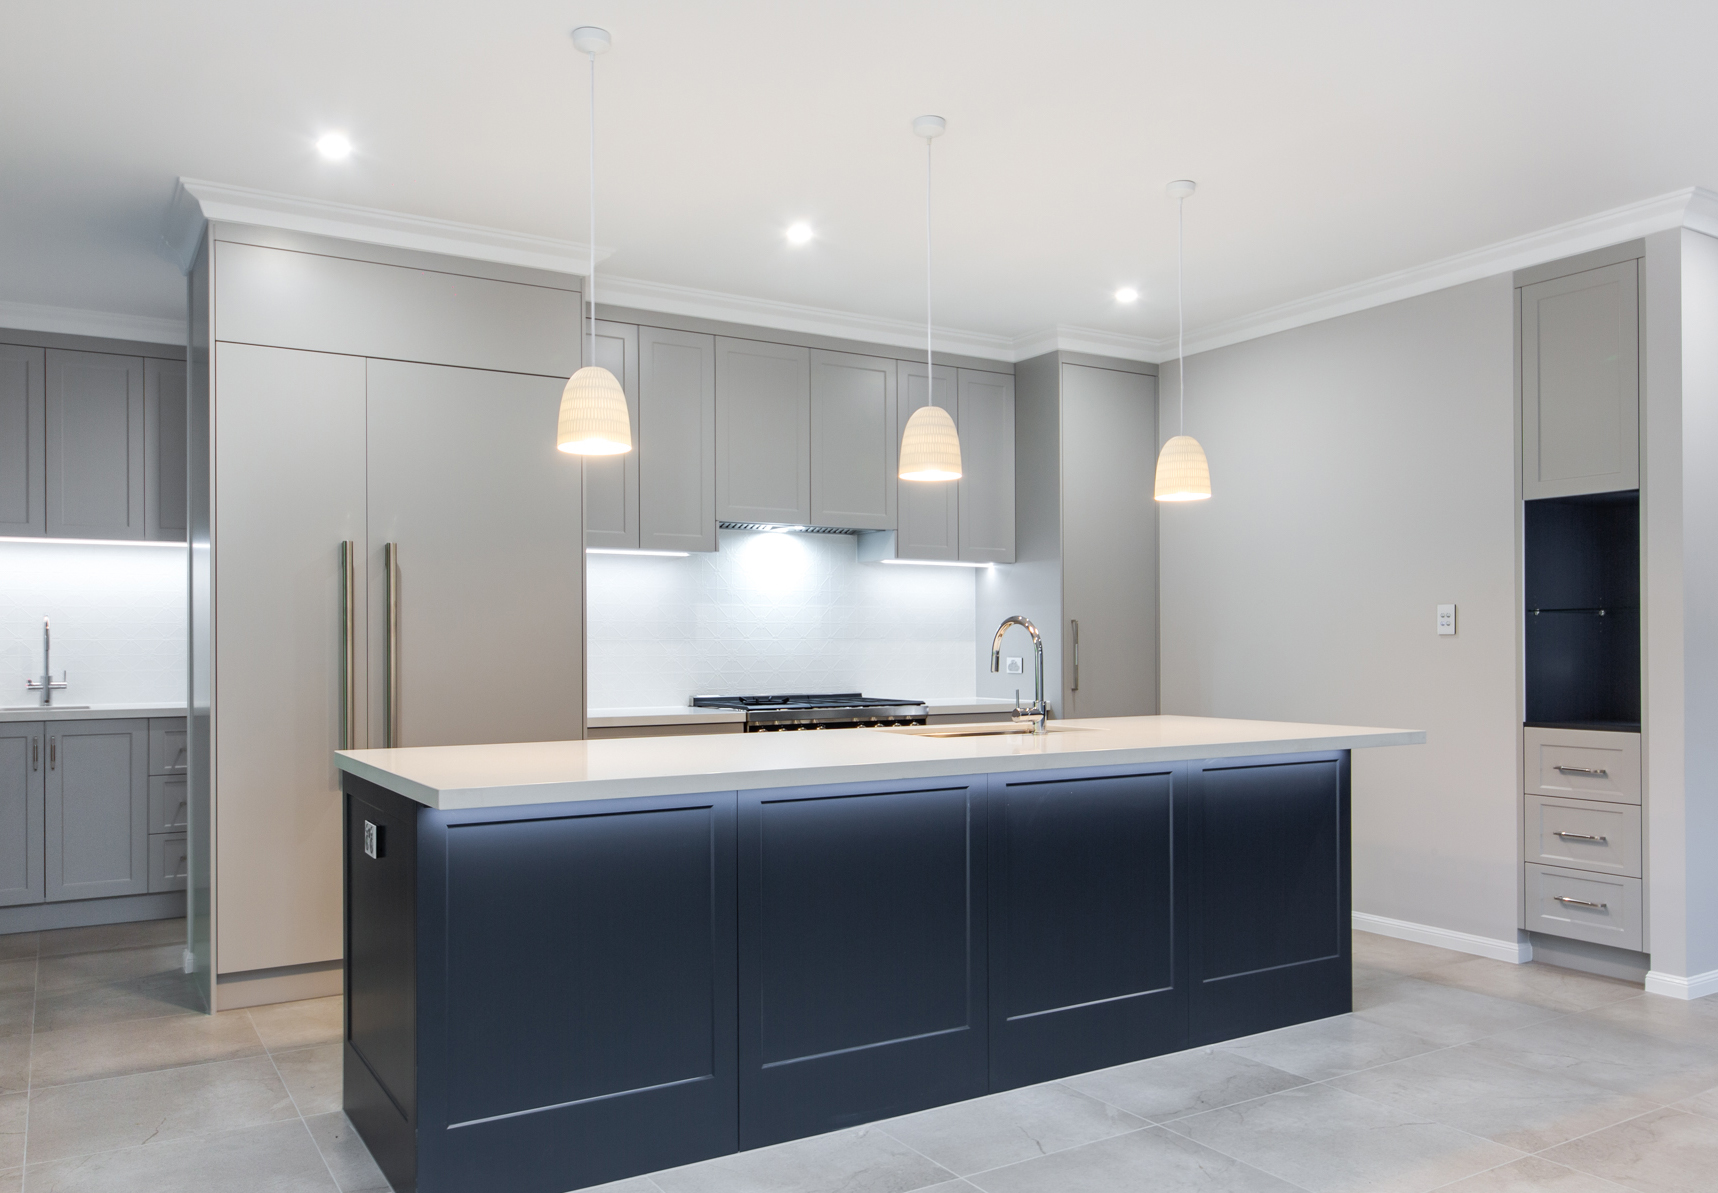 Hamptons meet contemporary design in this wonderful build by Fergus Builders - Mackay. Created with entertaining in mind, this space flows seamlessly from the kitchen to the outdoor alfresco area, making use of Queensland's beautiful weather and sunshine.